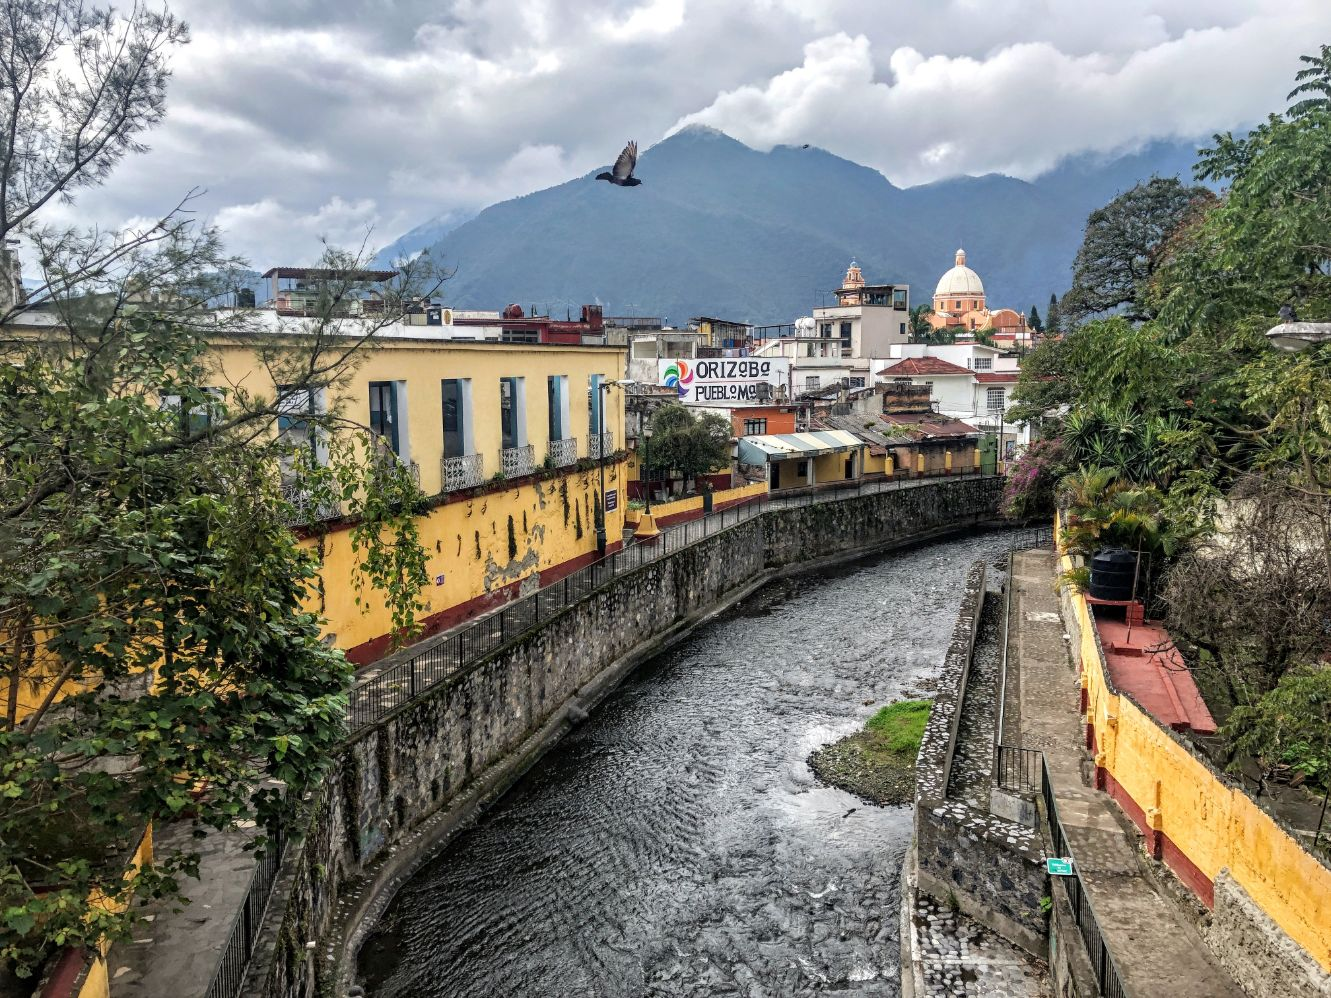 Orizaba river running through the colorful town center with mountains in the background